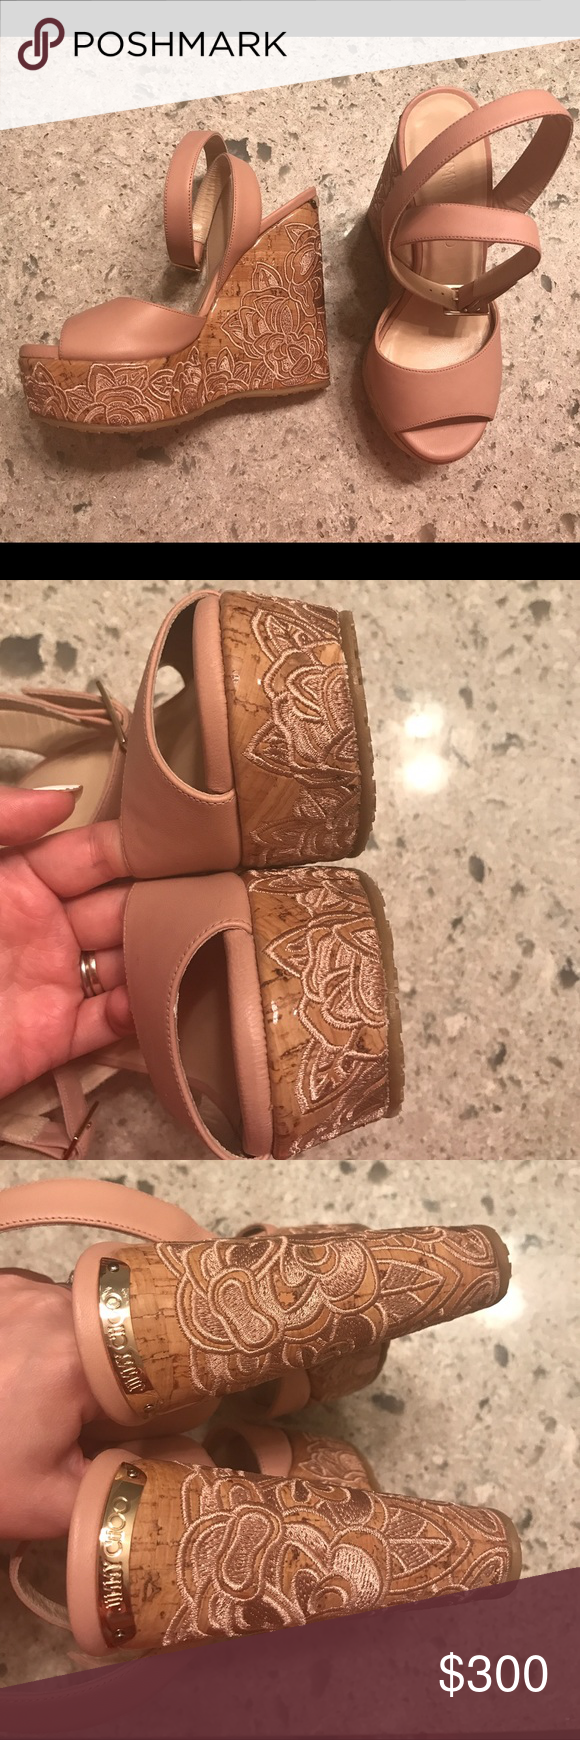 Jimmy Choo platform wedges Size 35.5. Like new condition. Light pink. Everything in my closet must go before February 2017 or will be removed. Jimmy Choo Shoes Wedges